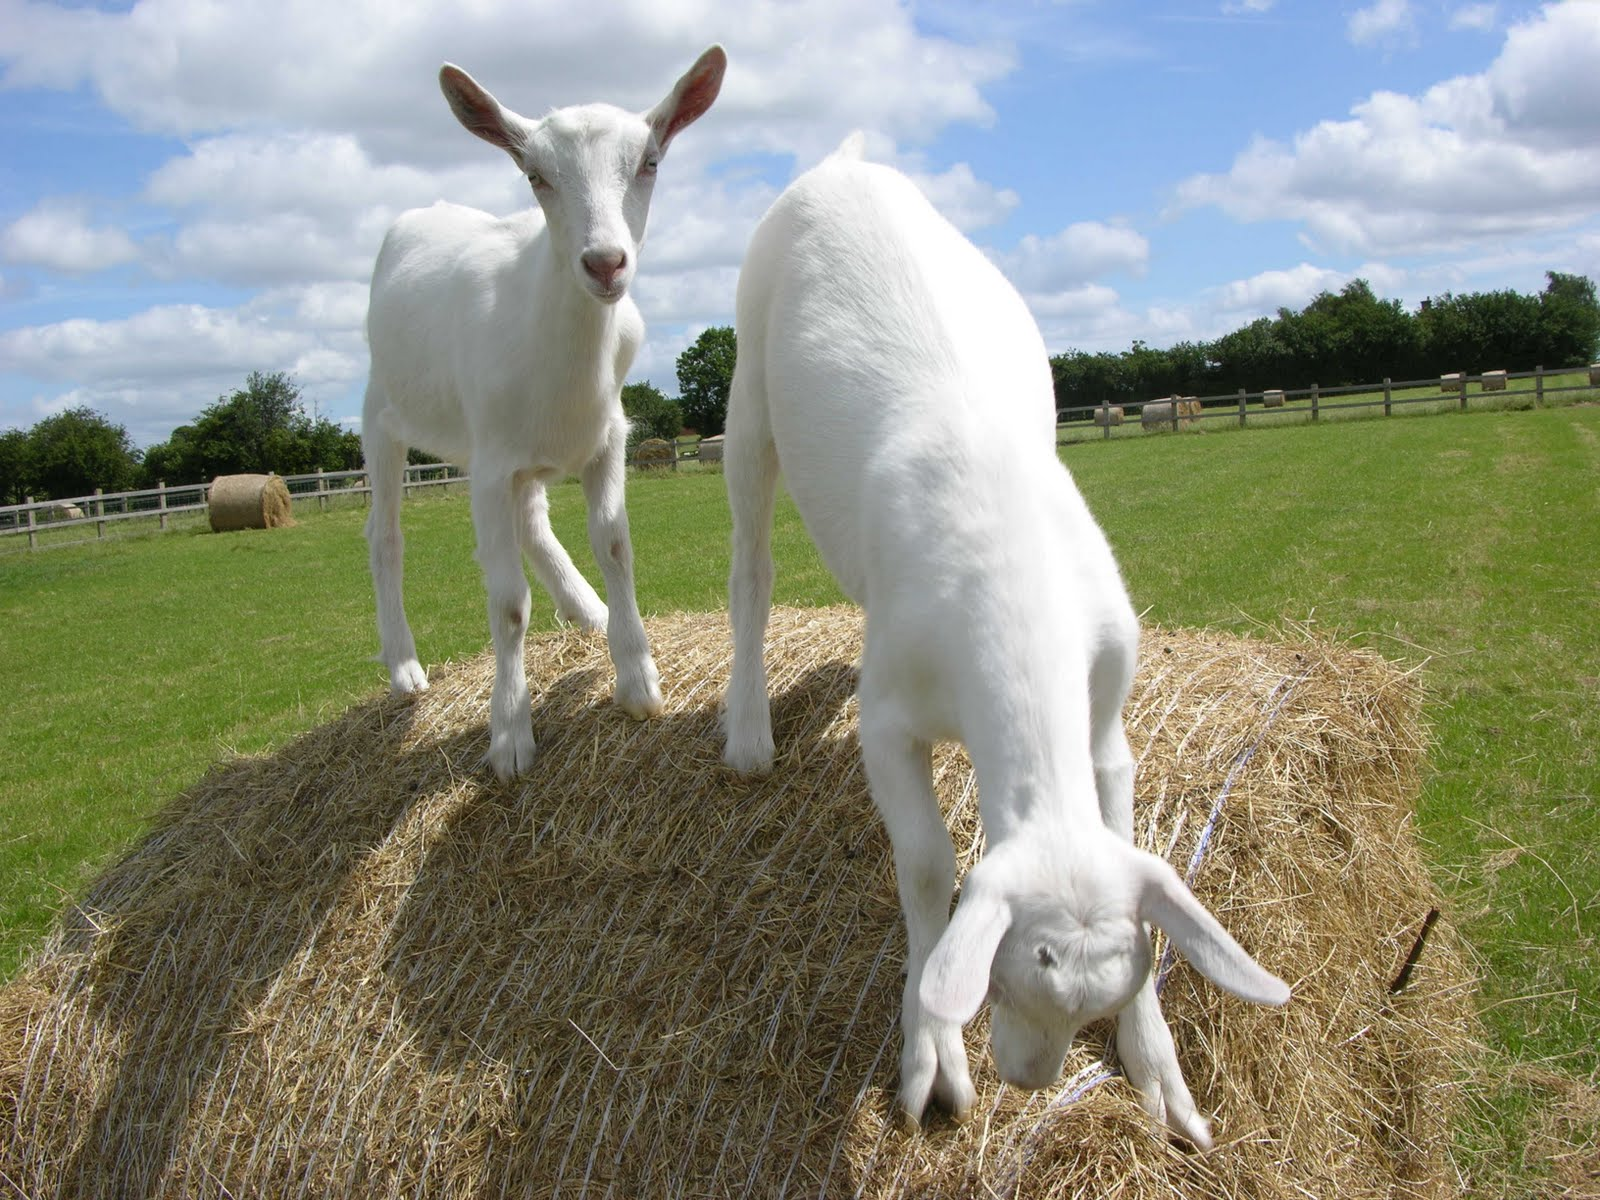 It's like Male goats peeing on their heads this anywhere